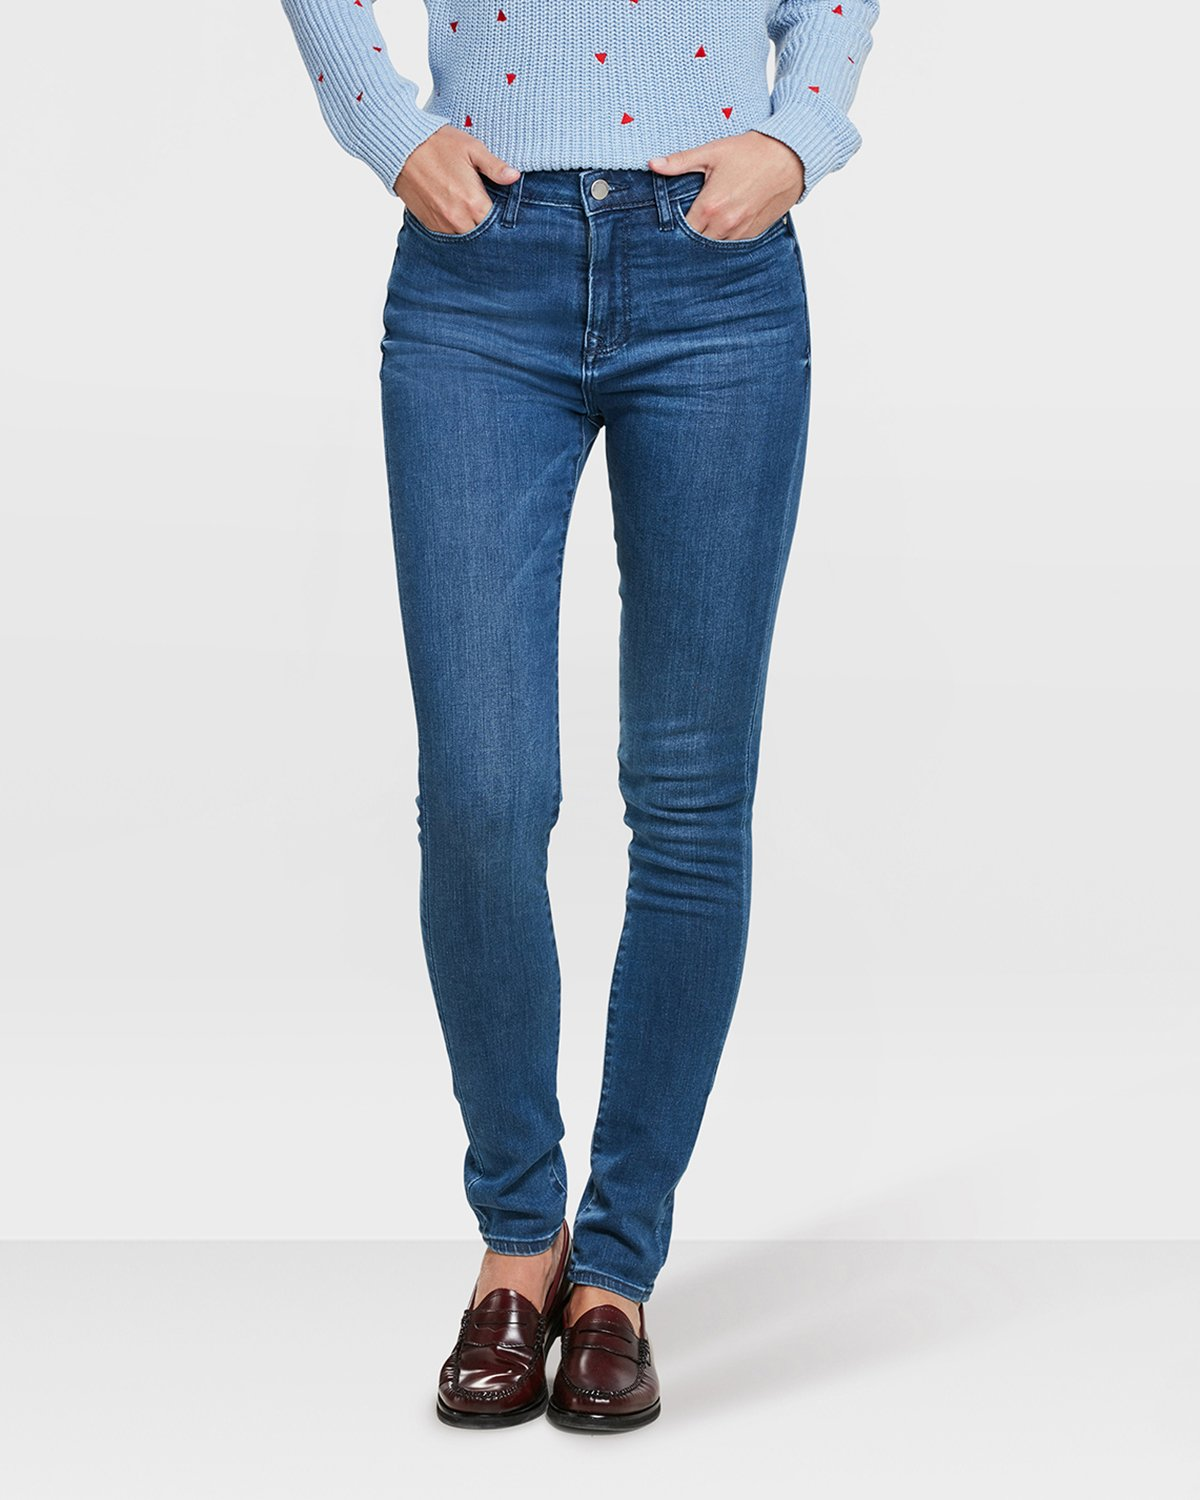 Jeans Damen Skinny Mit Taille80569732 Fashion We Hoher F1l3uTKJc